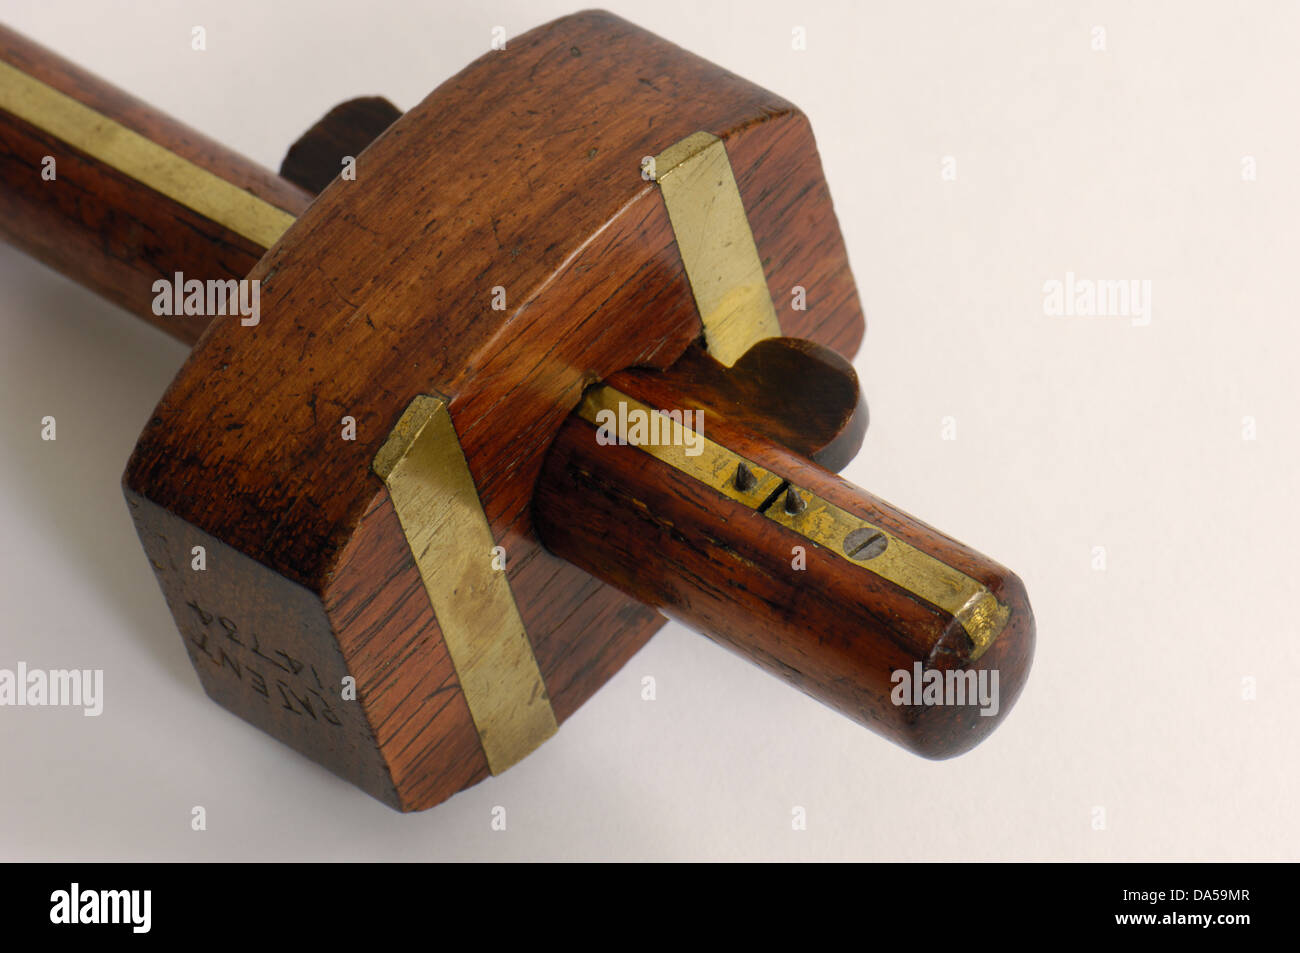 Old English Mortice Or Mortise Gauge For Cabinet Makers And Carpenters    Stock Image